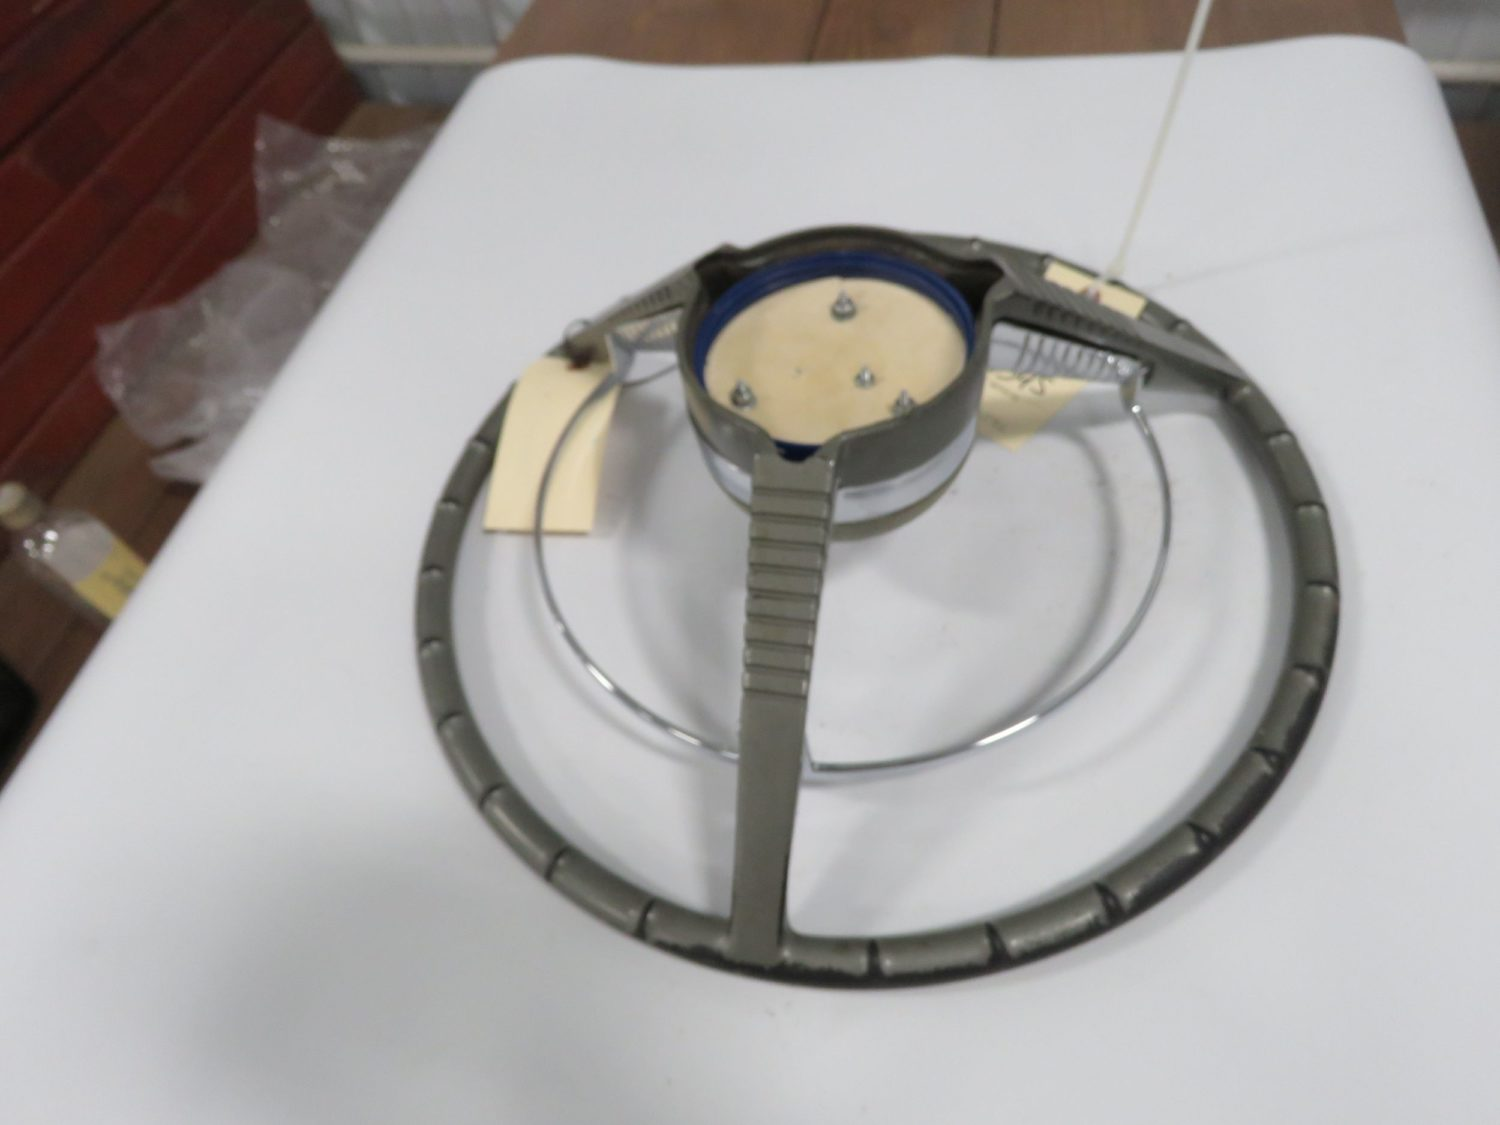 1958 Ford Edsel Pushbutton Steering Wheel w/Horn Ring - Image 2